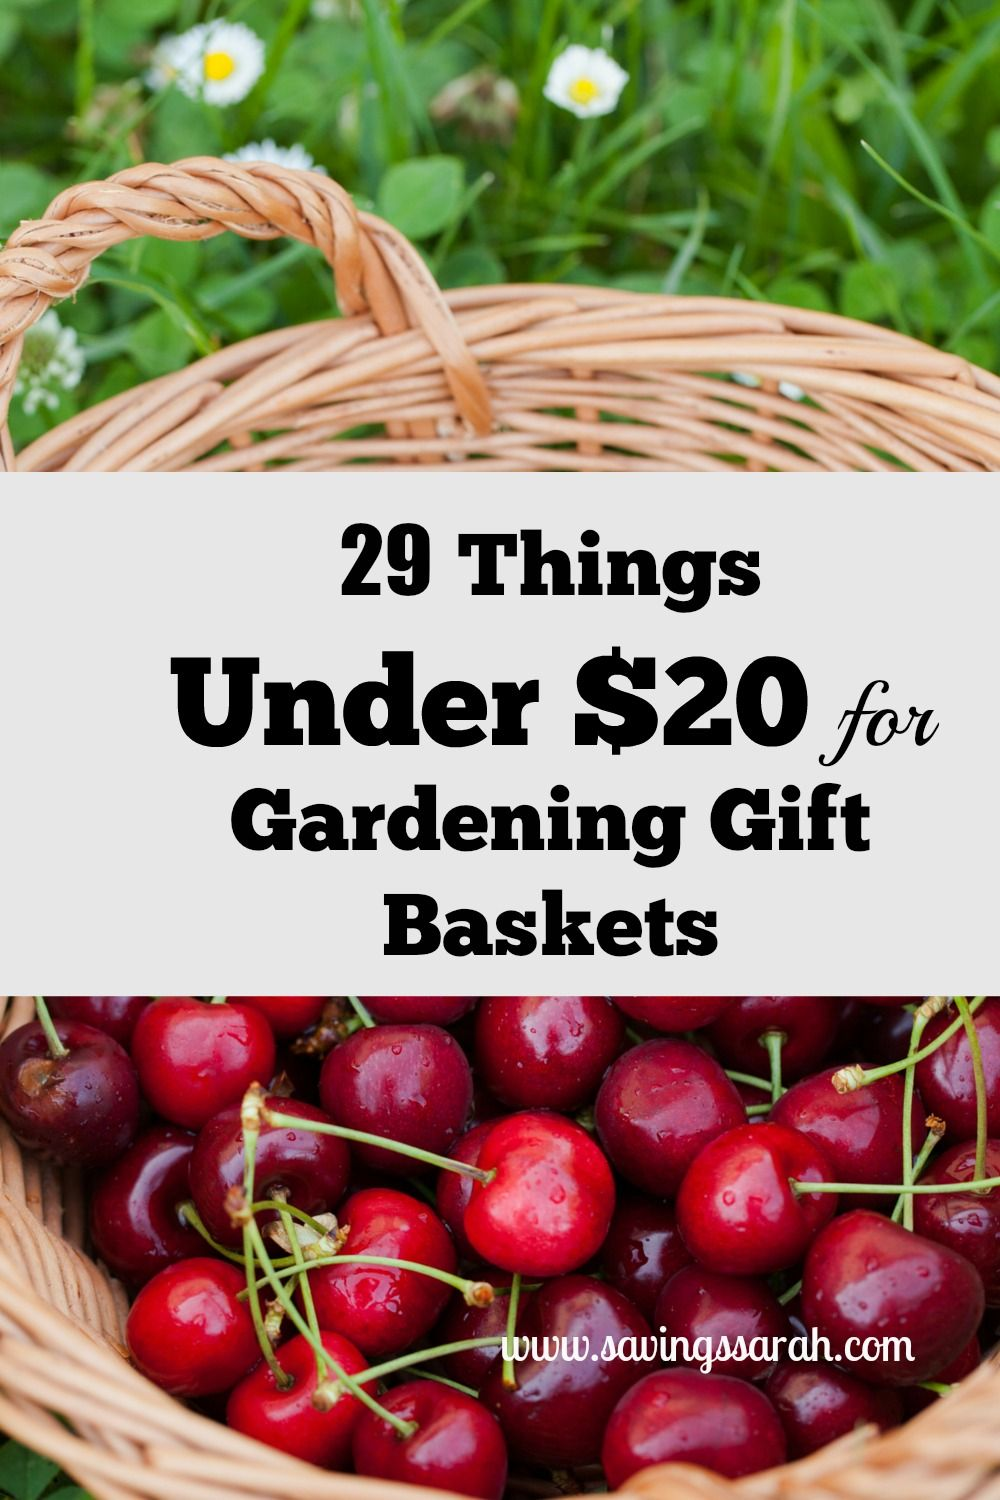 Have Friends Or Family Who Are Big Fans Of Gardening? Then Fill Gardening  Gift Baskets From These 29 Products Under $20. Gifts That Will Keep Them  Growing.